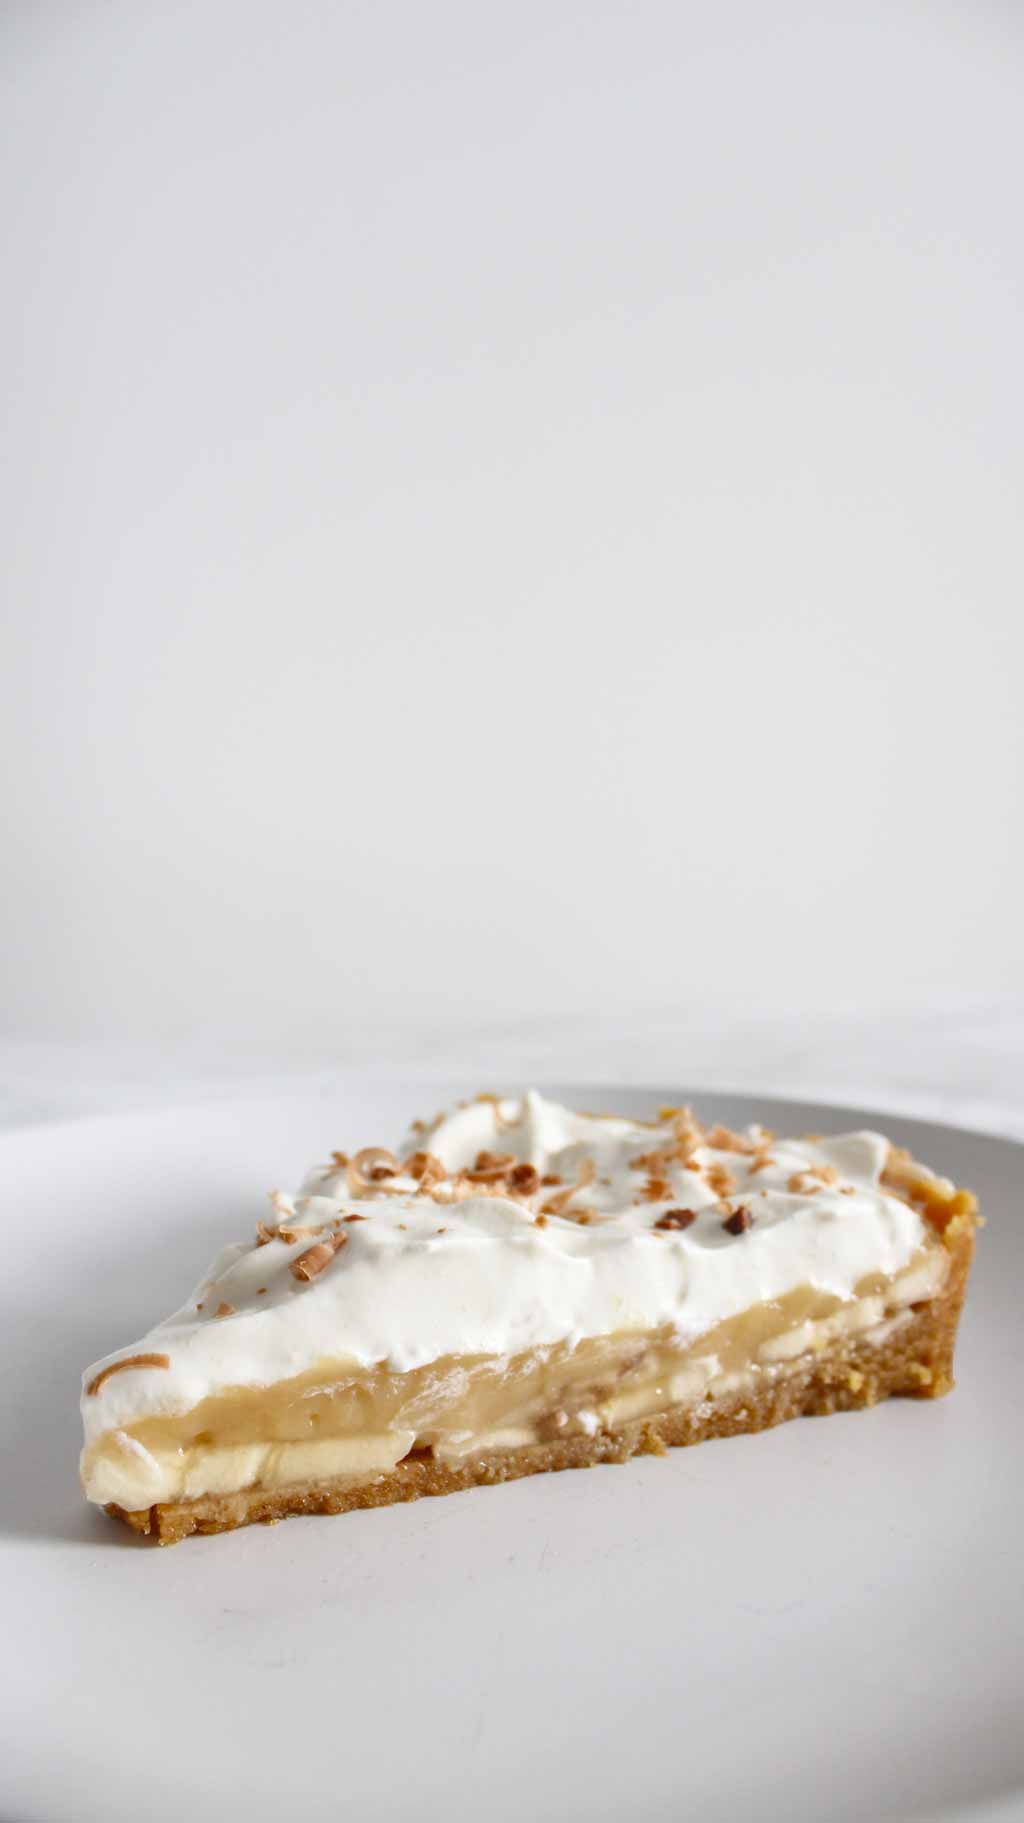 Slice Of Banoffee Pie On A Plate